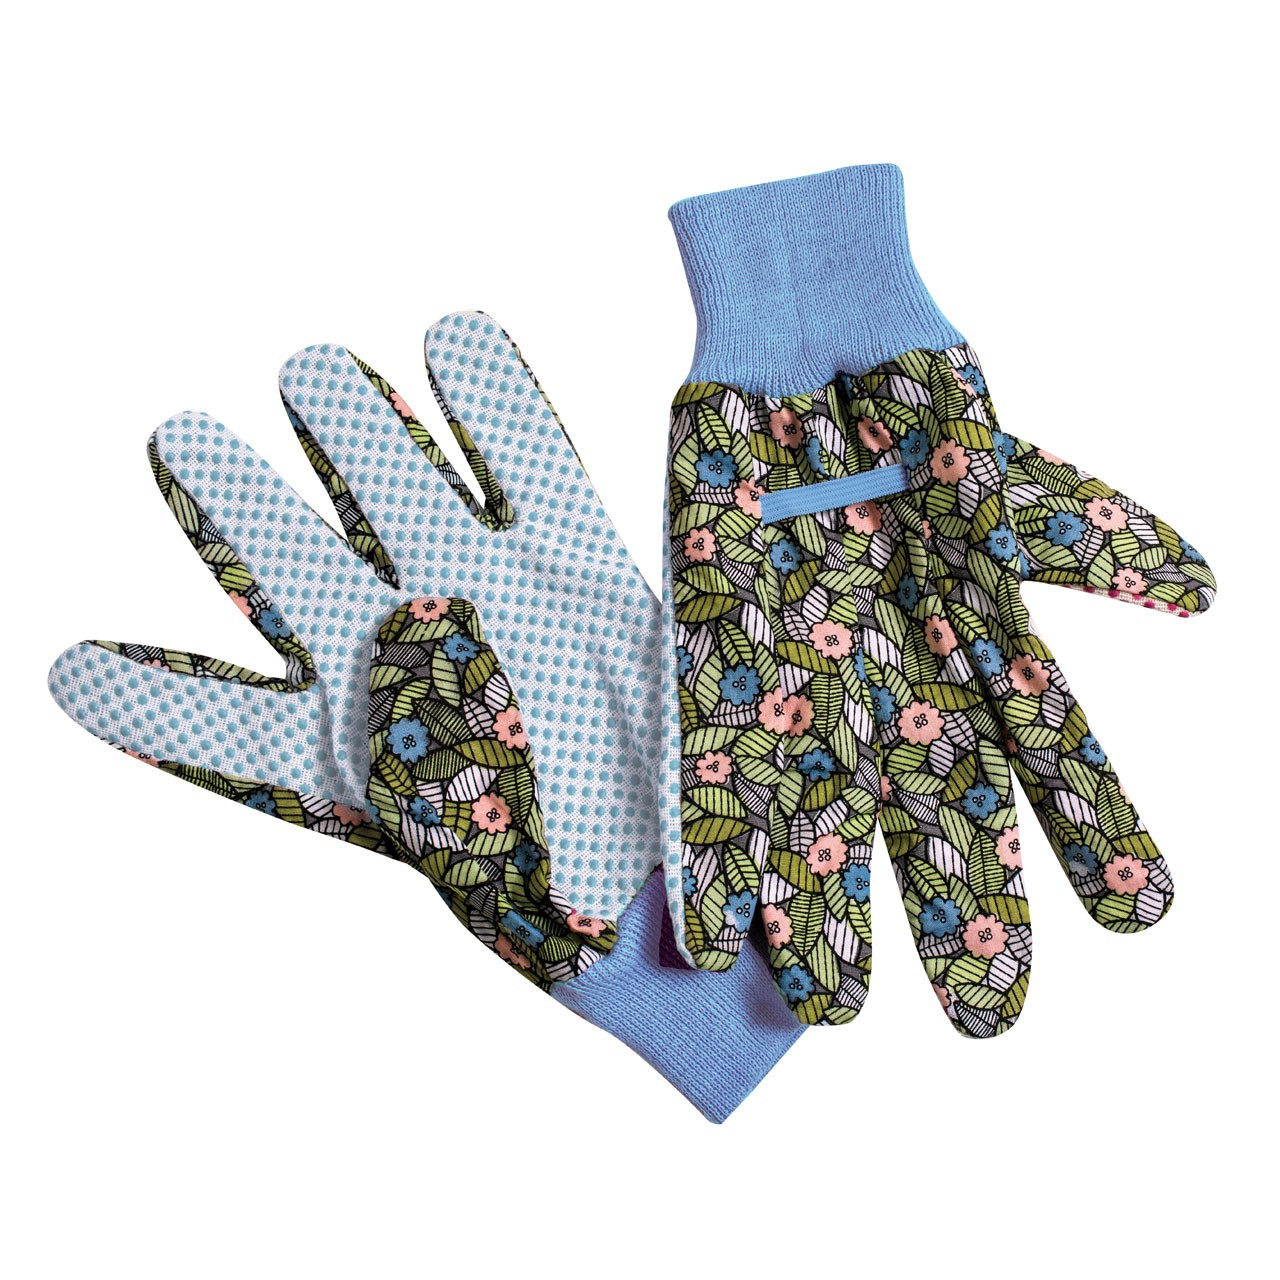 Prime Furnishing Finchwood Felicity Gardening Gloves